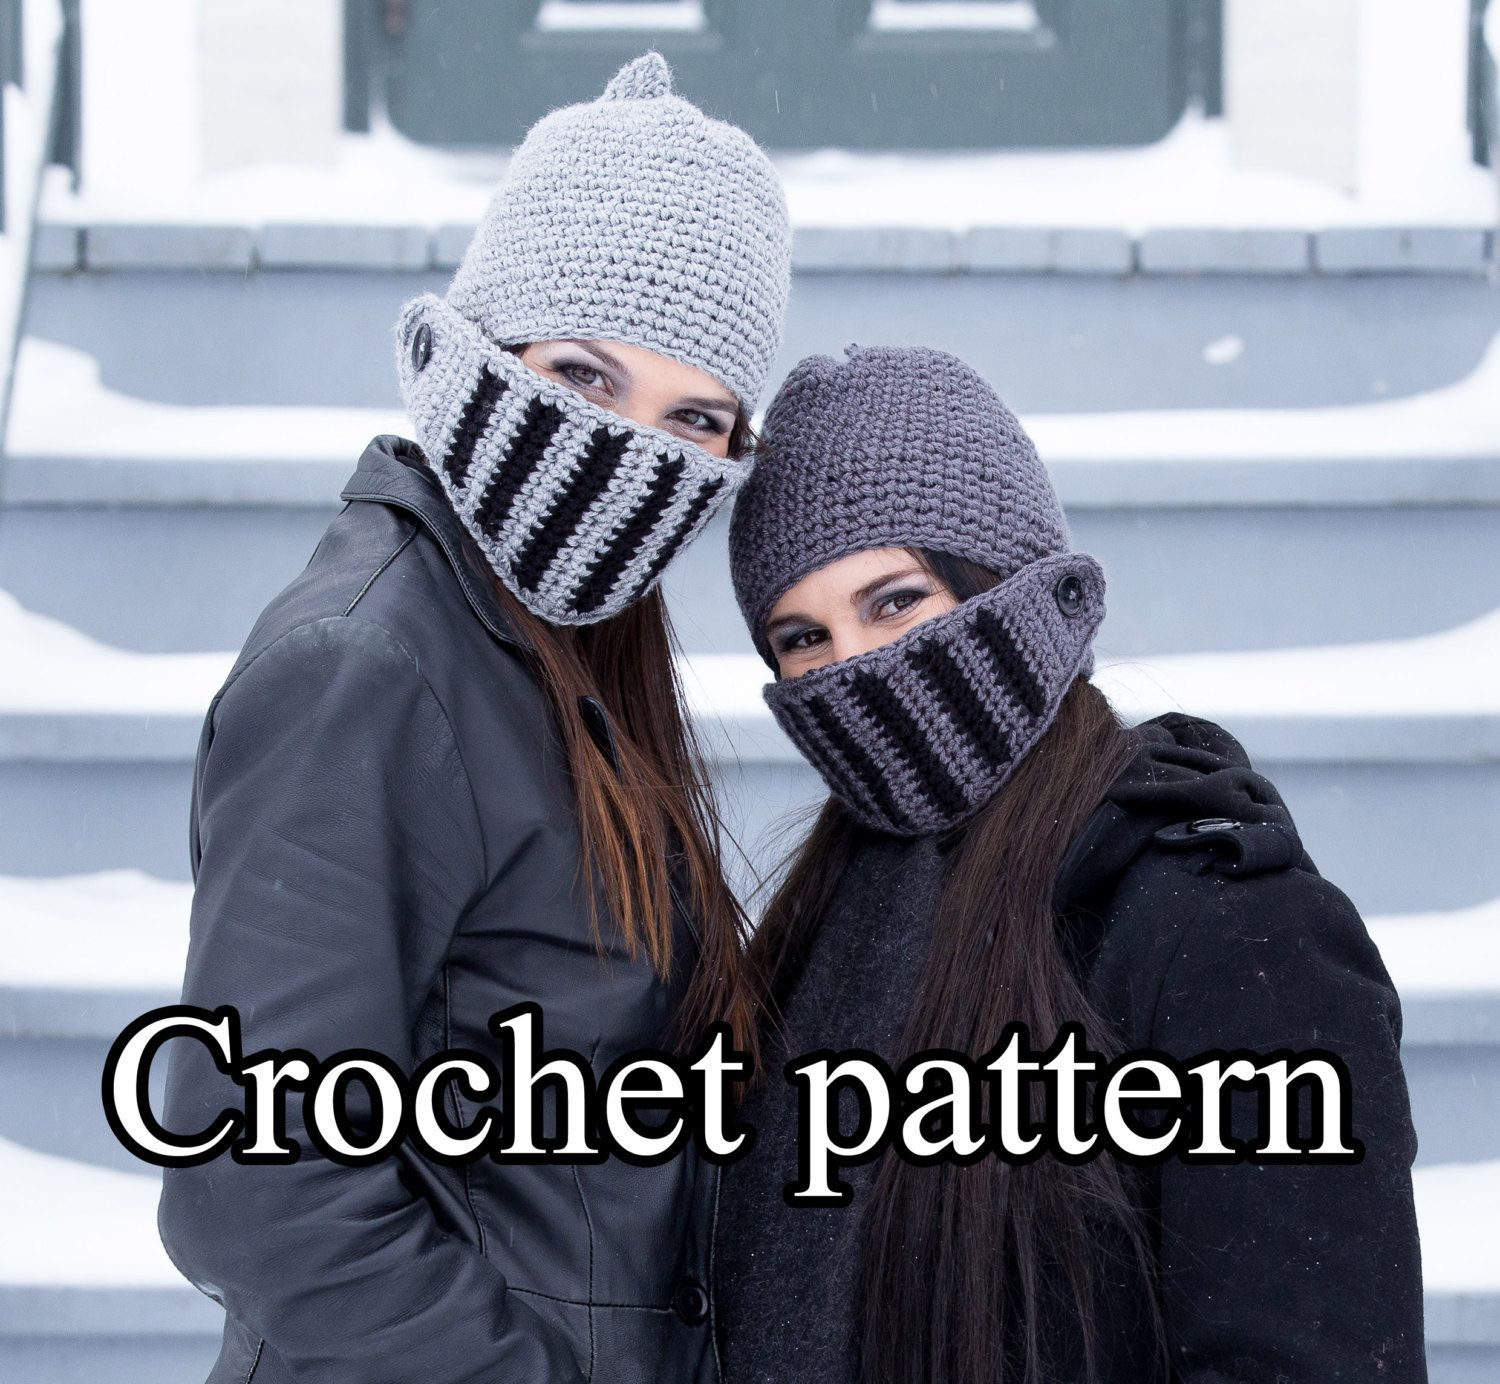 Knight helmet crochet hat pattern for winter in english and french ...